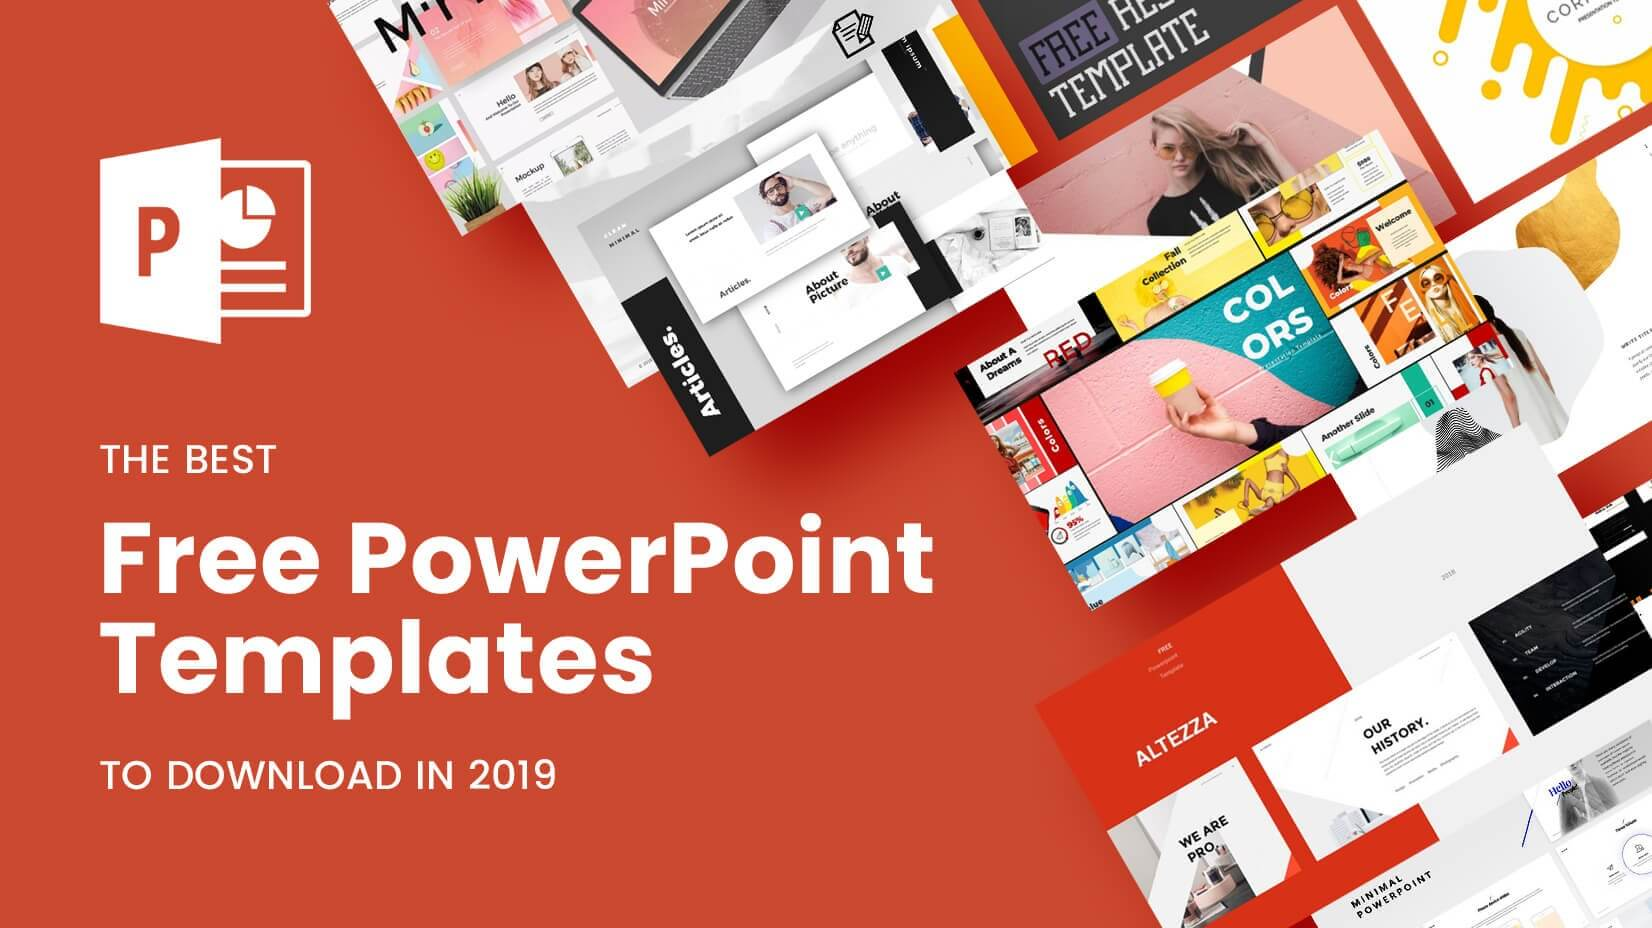 The Best Free Powerpoint Templates To Download In 2019 Within Powerpoint Slides Design Templates For Free